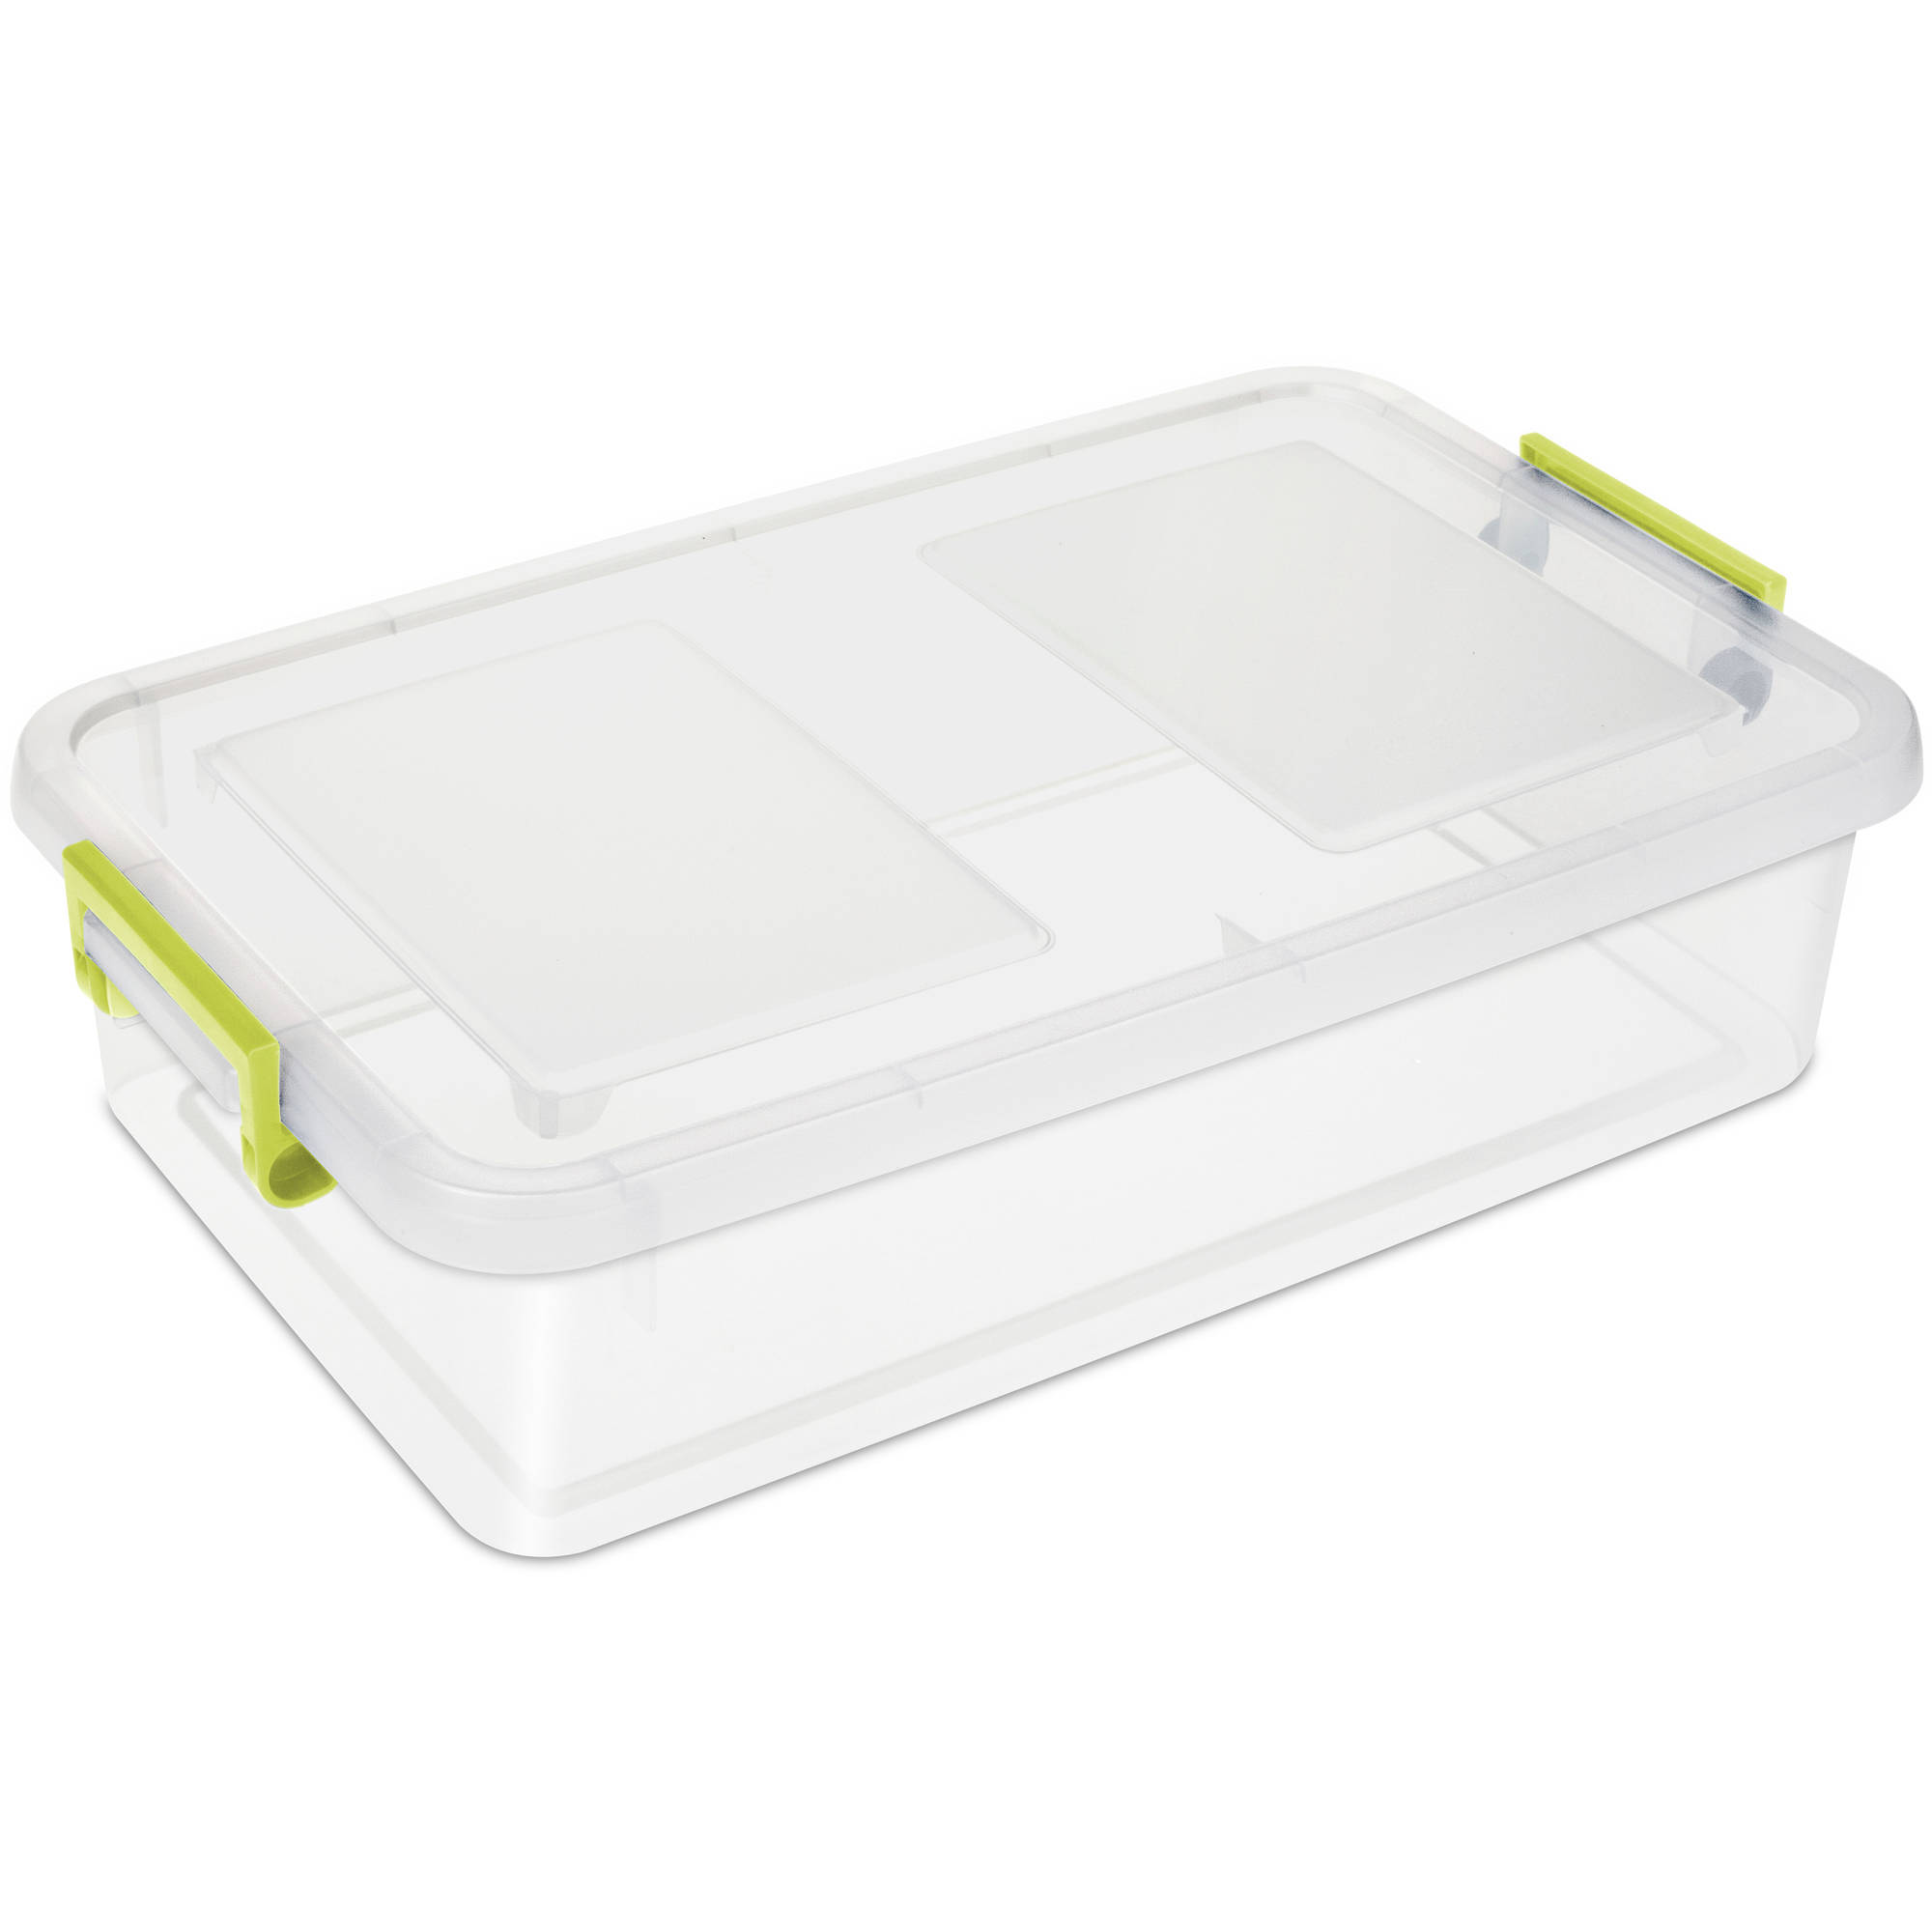 Sterilite 25-Quart Modular Latch Box